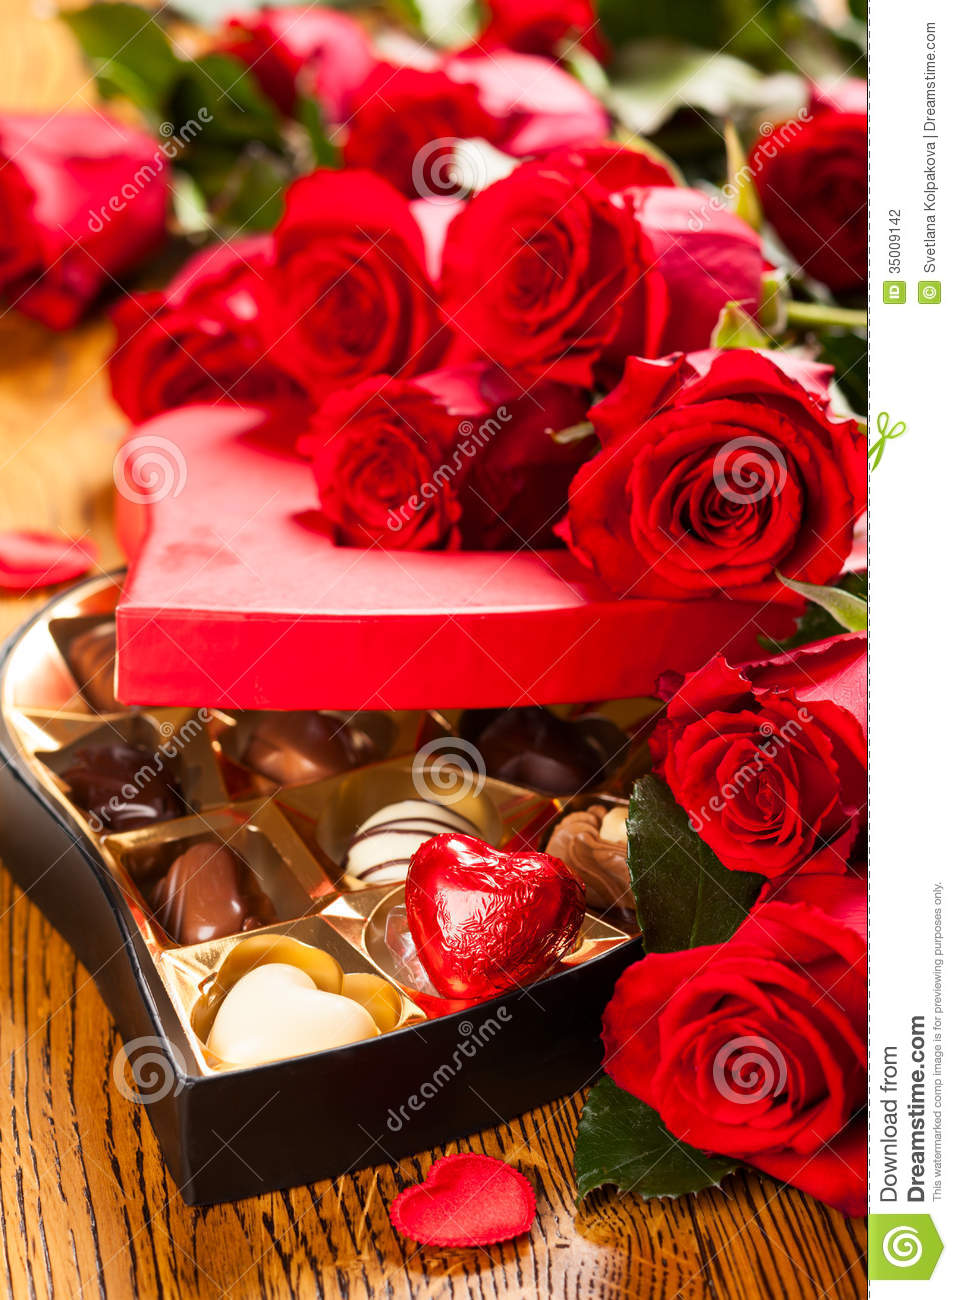 Birthday Cake Wallpaper 3d Box Of Chocolate Truffles With Red Roses Stock Photography